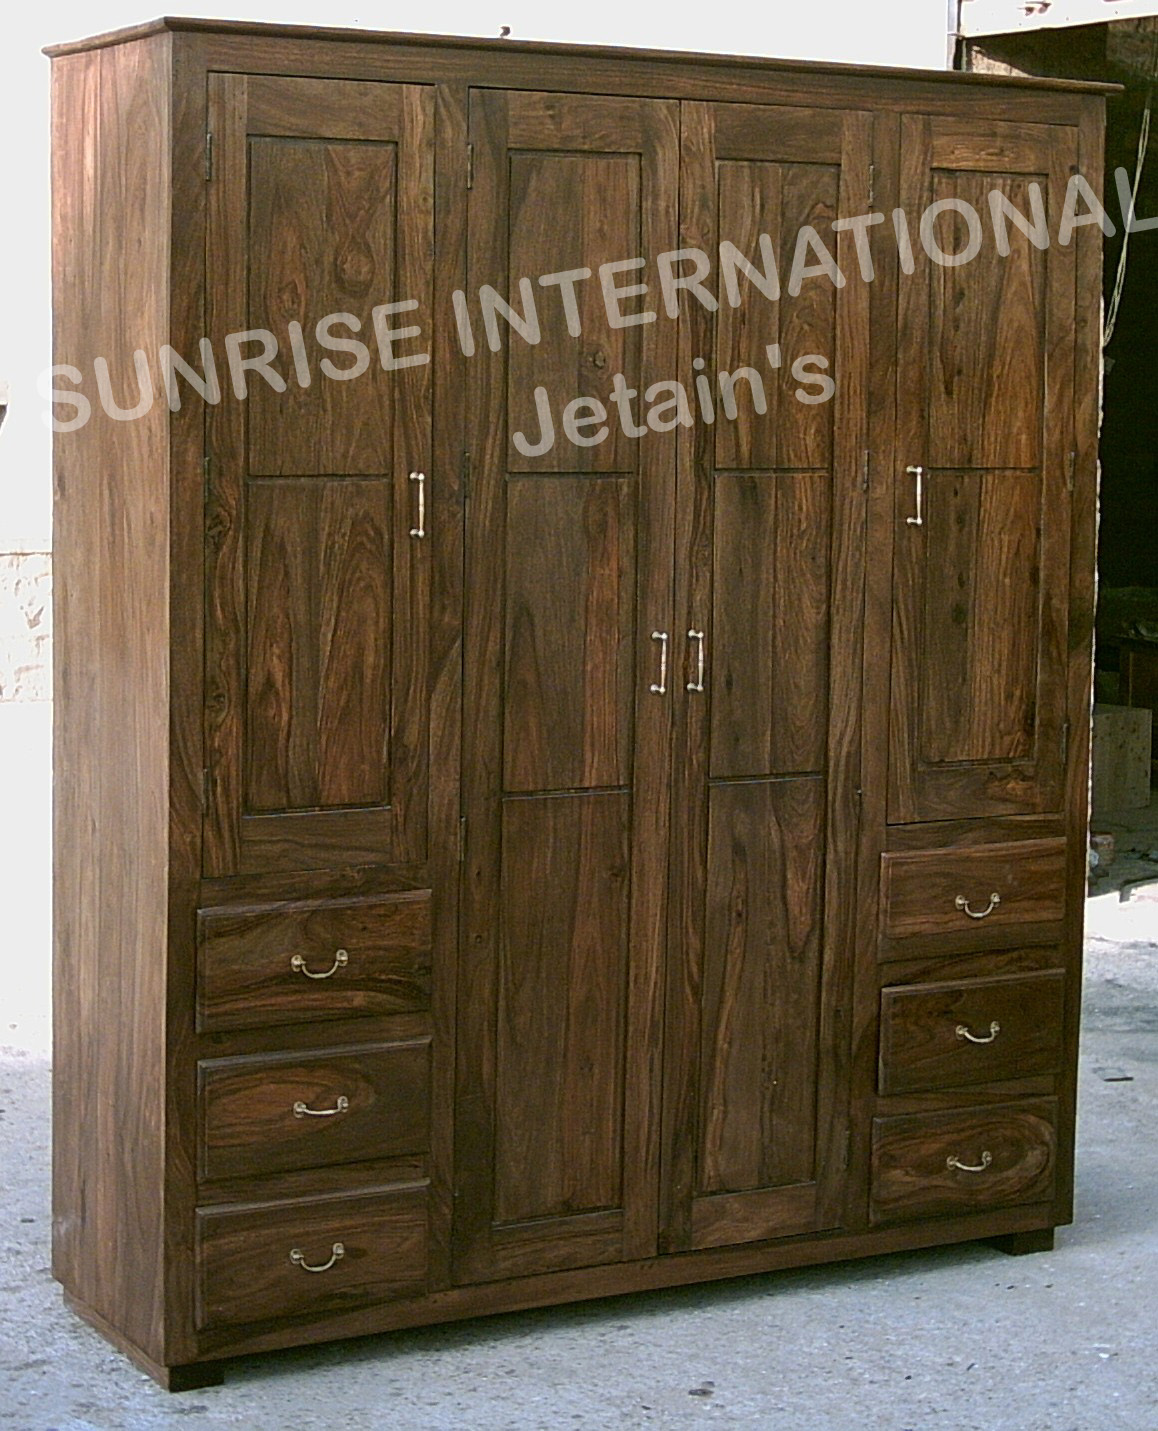 Sunrise international wooden almirah wardrobes Pictures of wooden almirahs